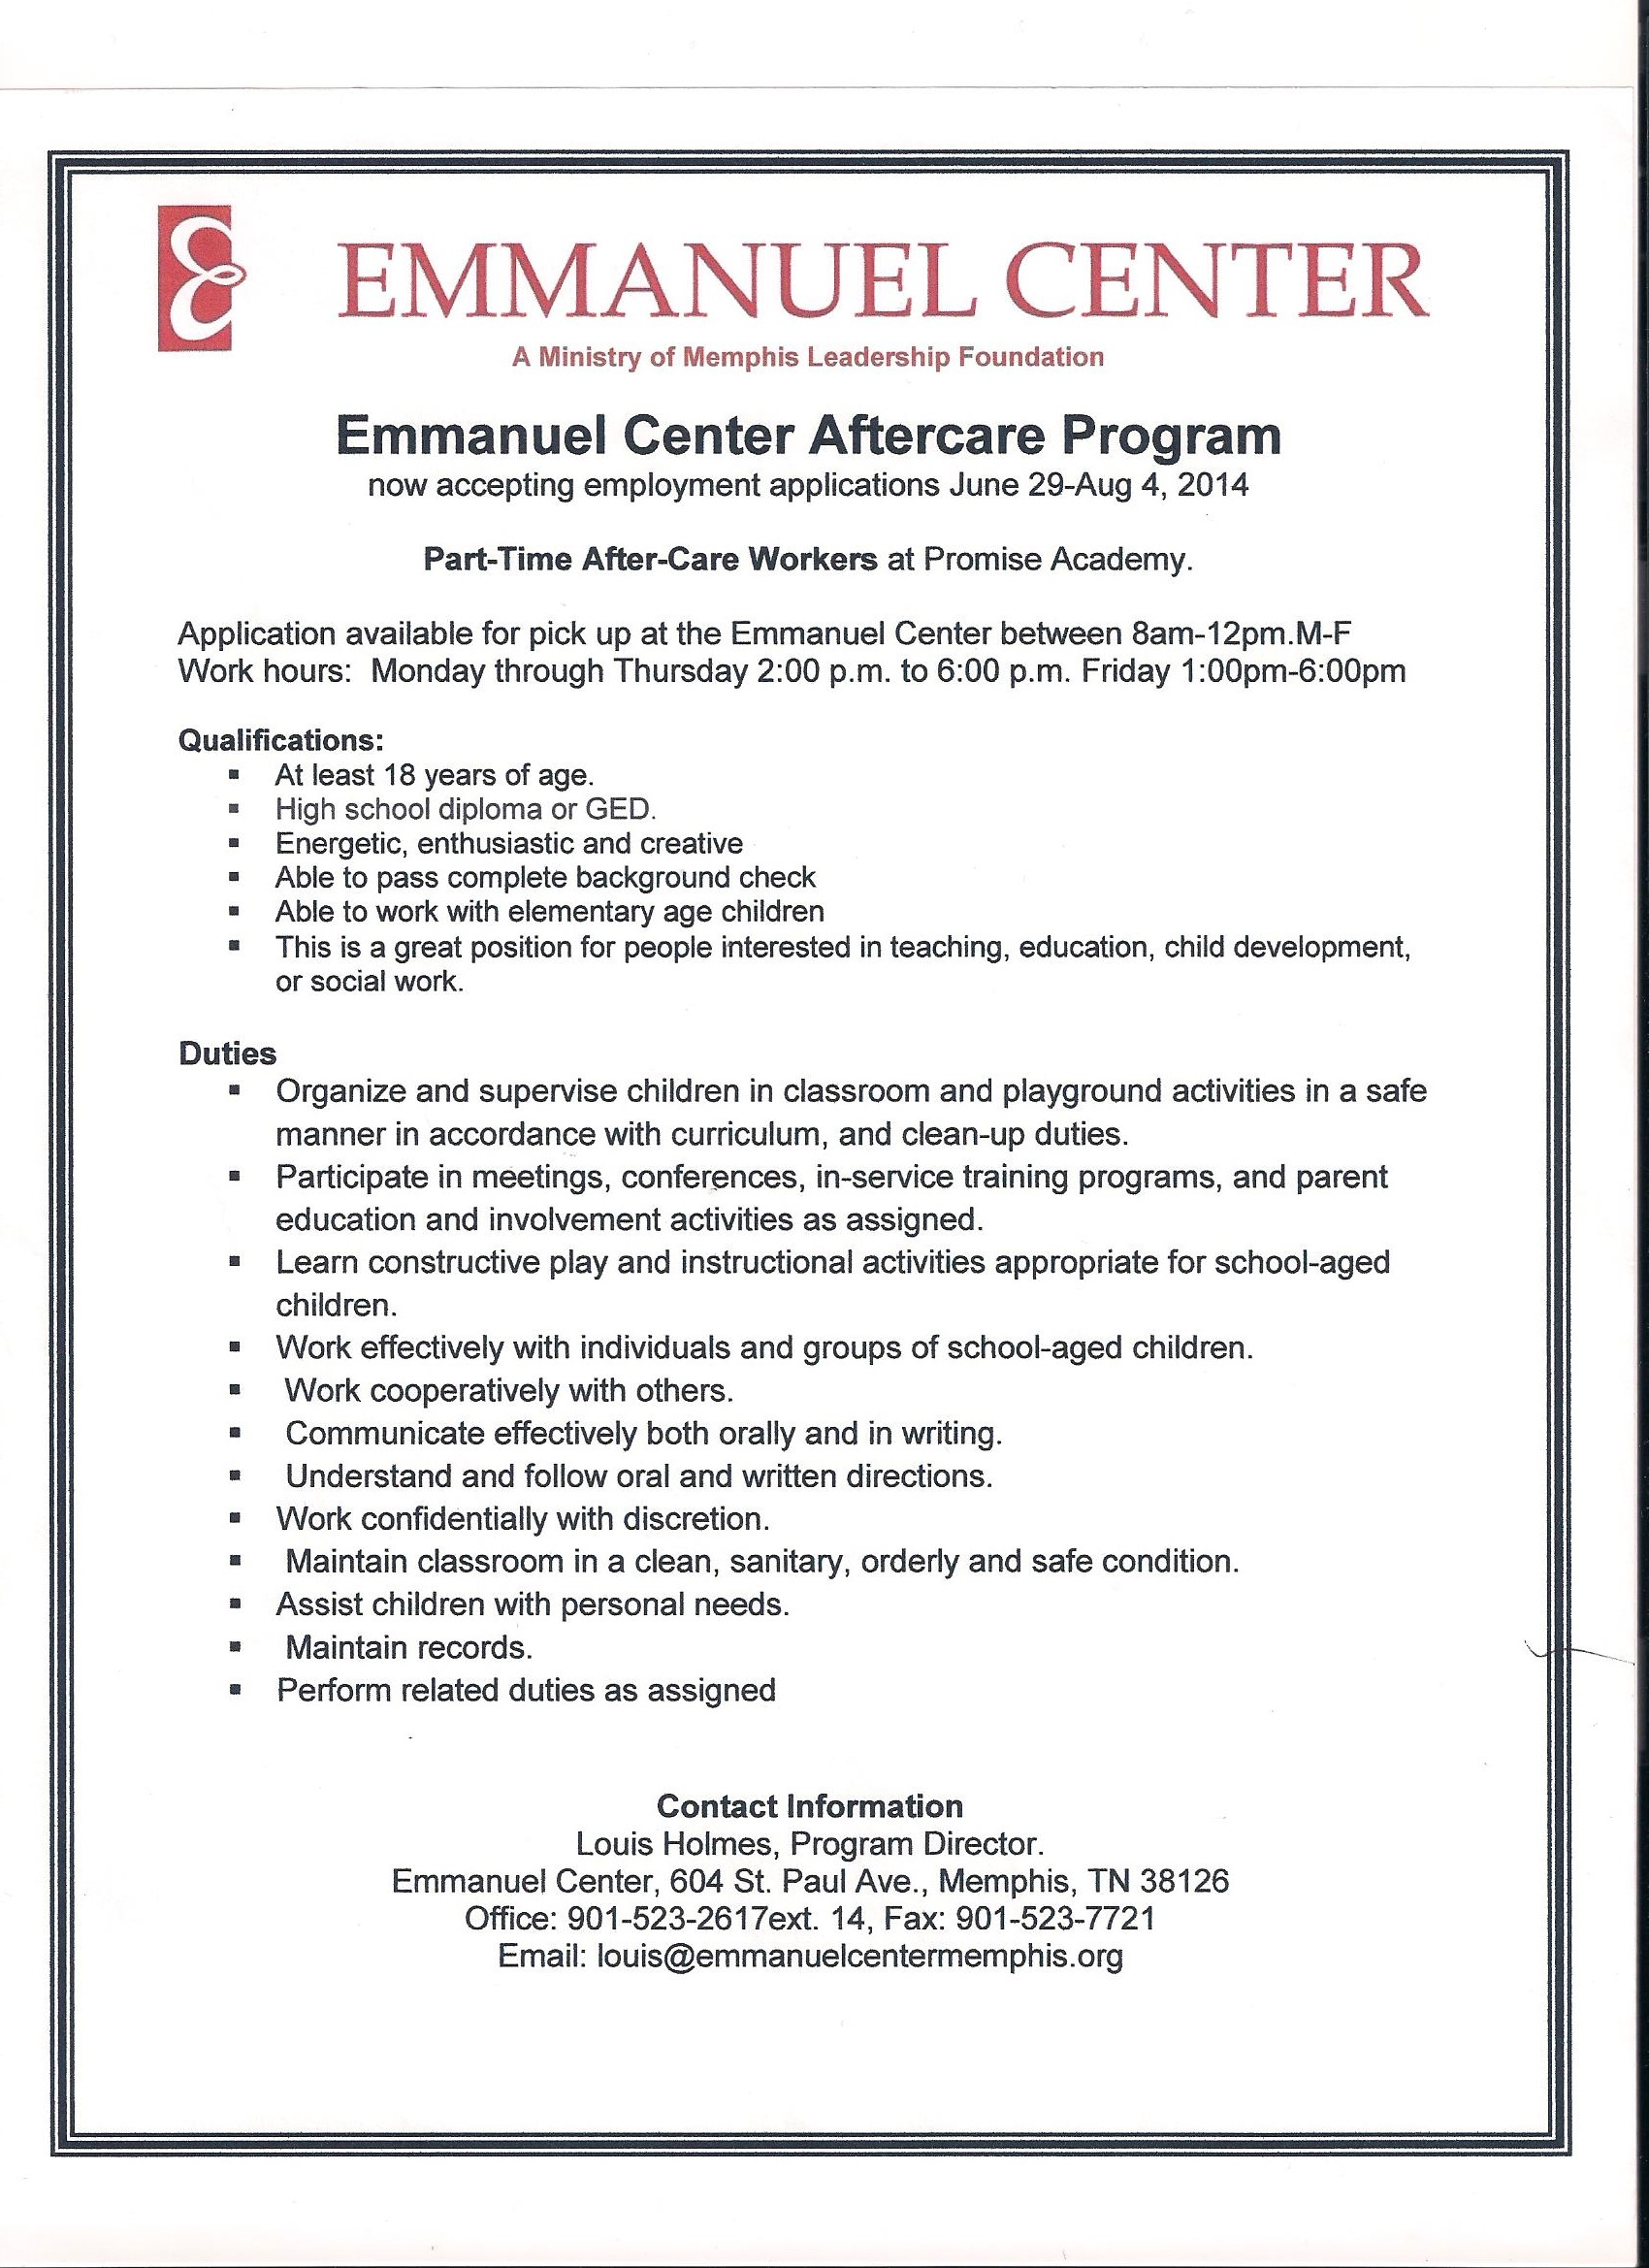 Child care job career news from the memphis public libraries after care workers emmanuel centers promise academy 1betcityfo Image collections